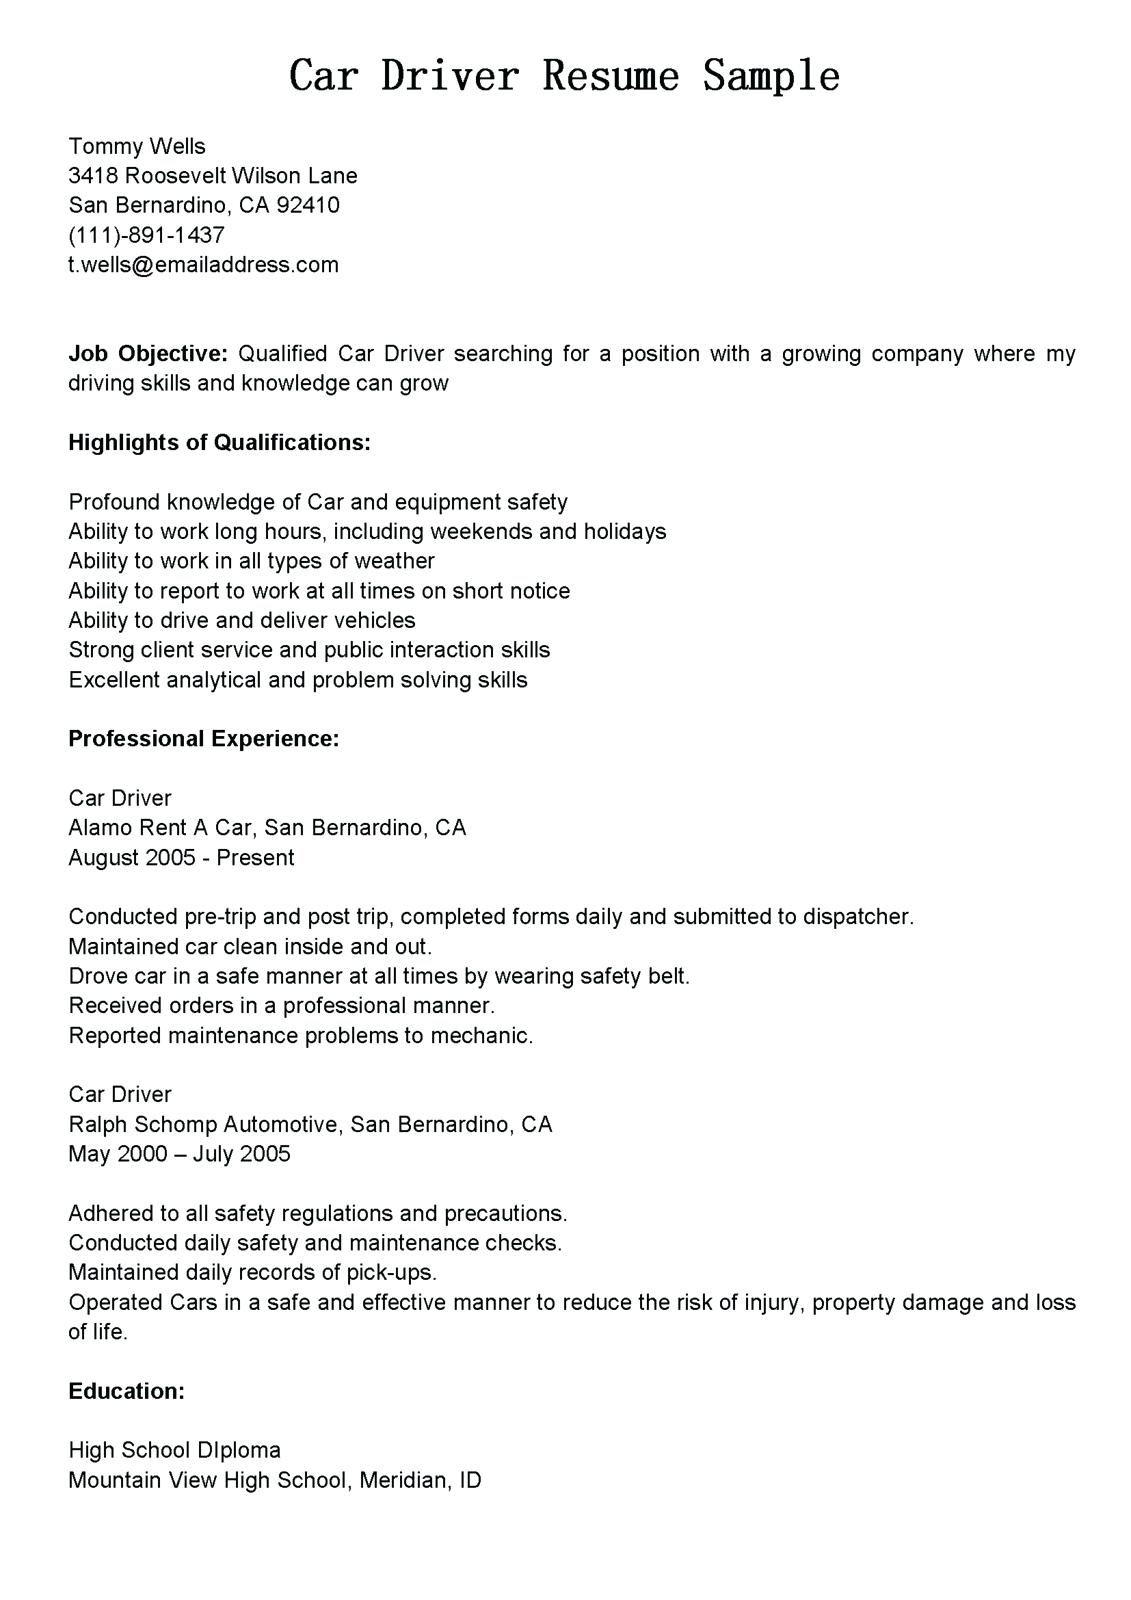 Resume Objective Examples  Truck Driver Resume Objective Statement Objectives Examples Samples